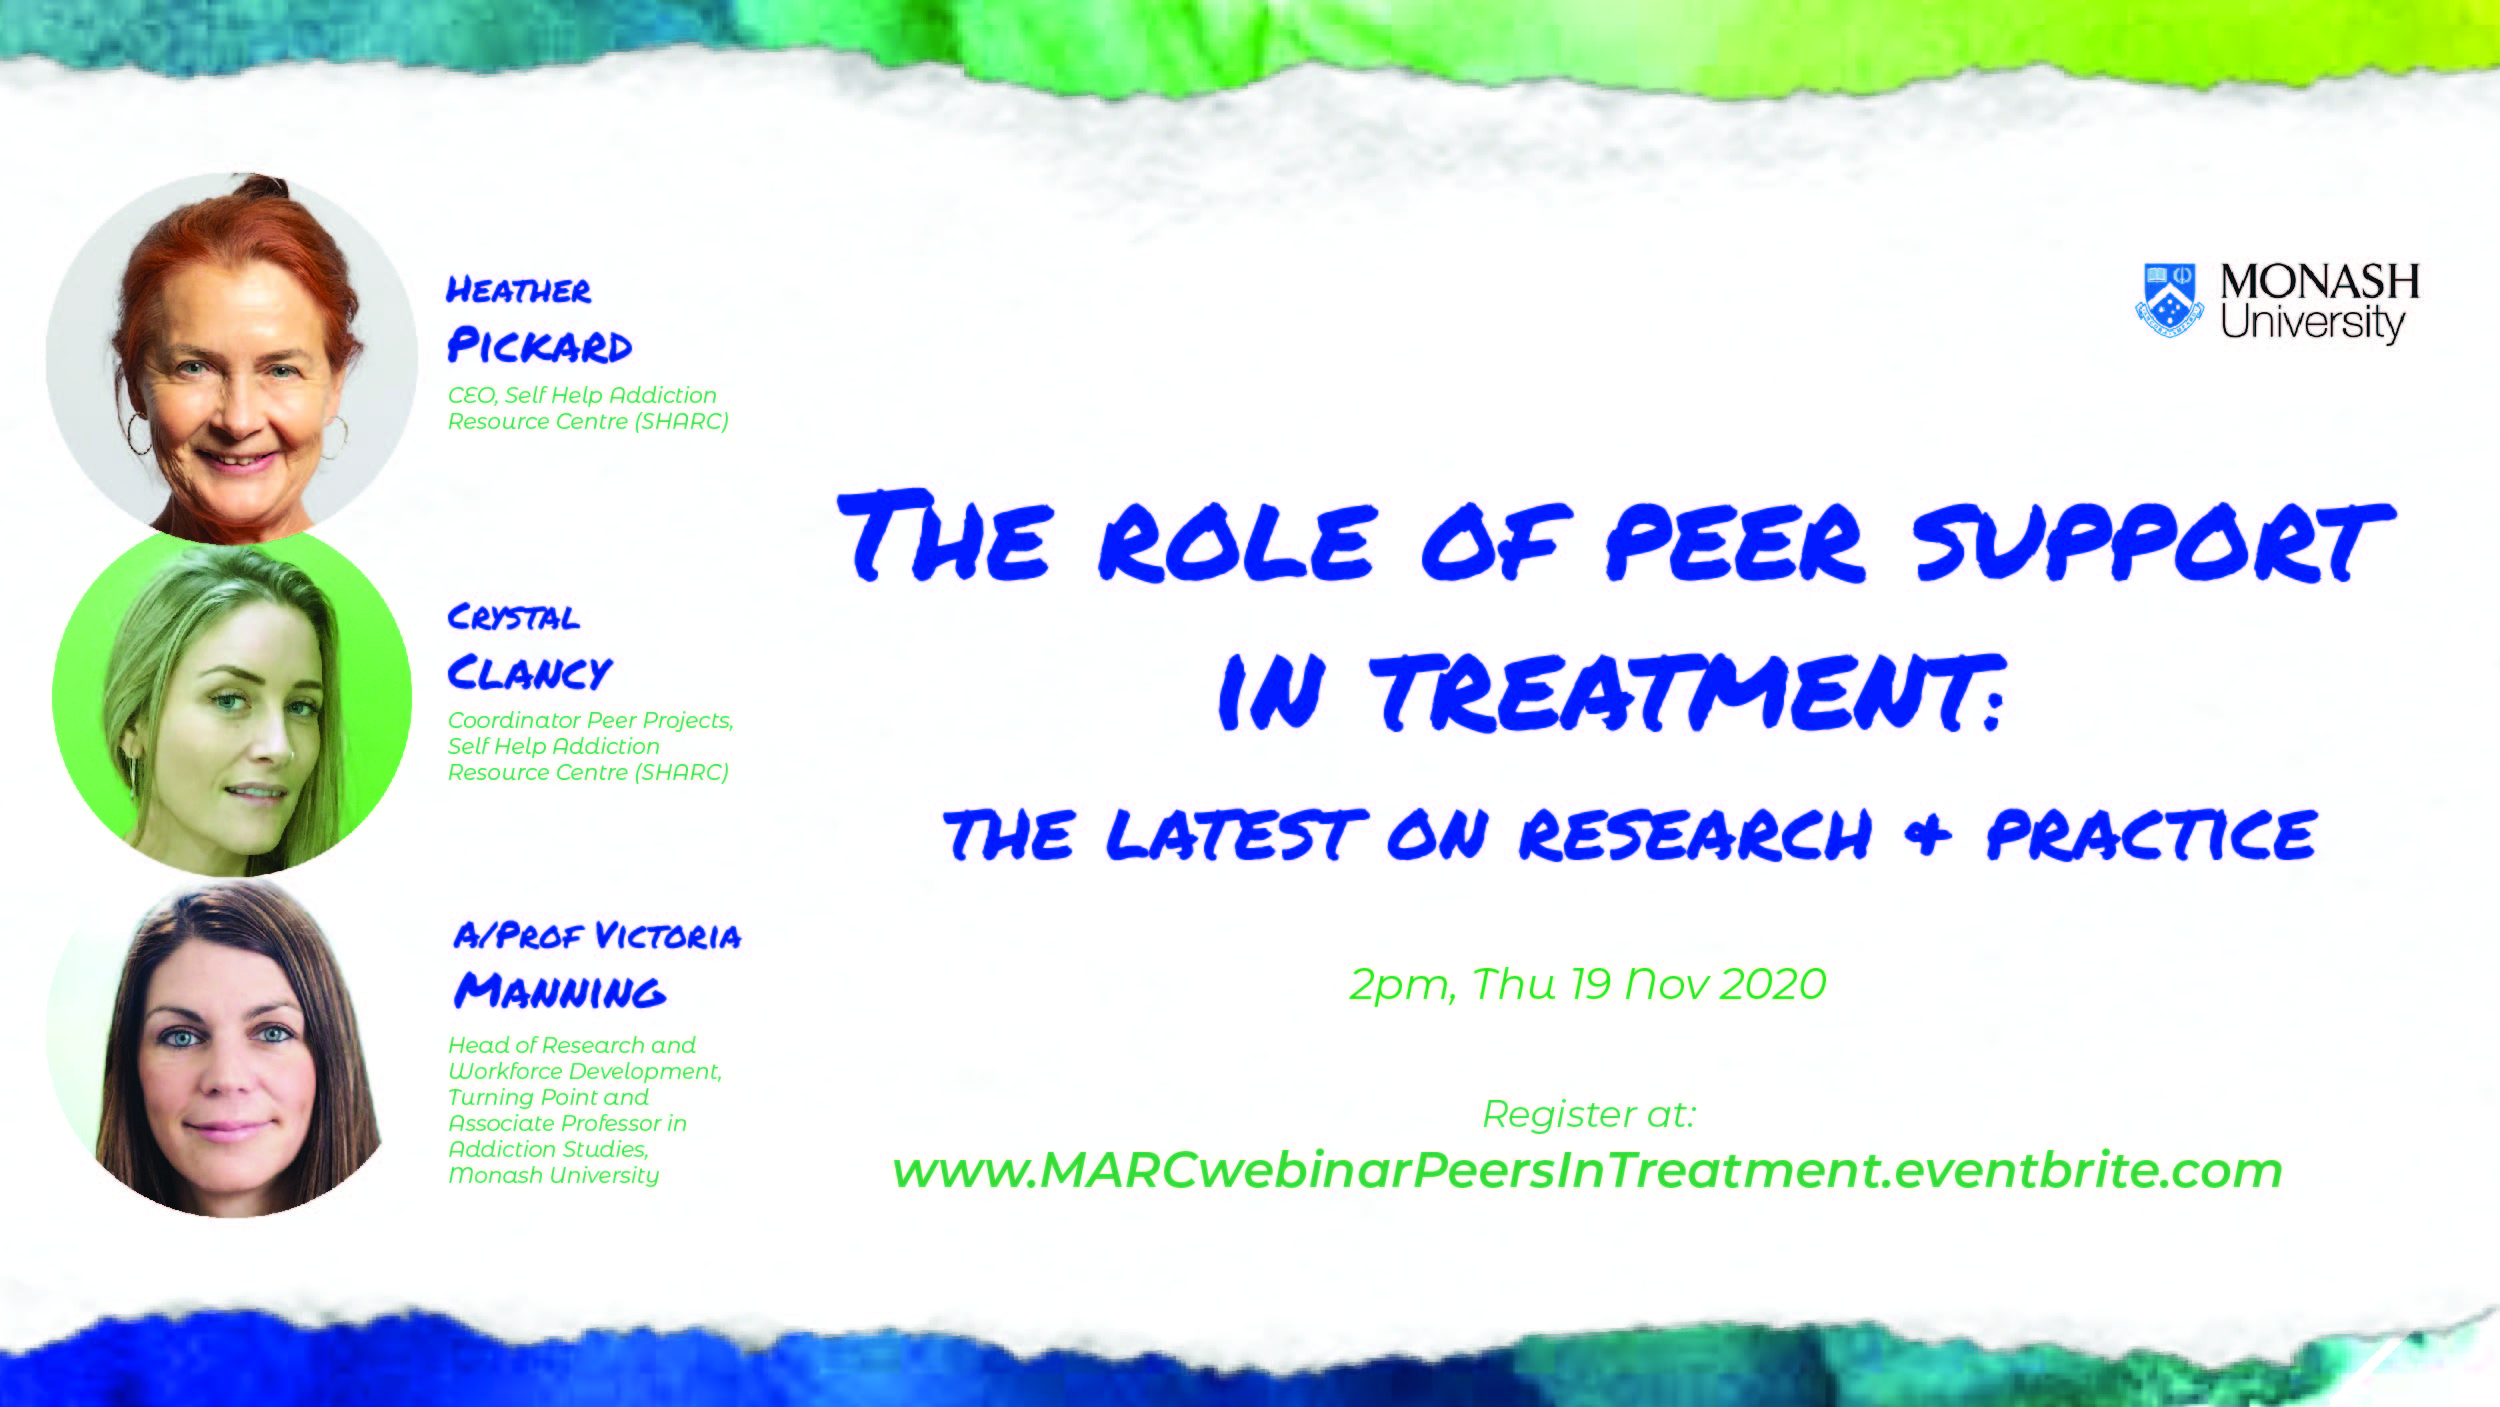 The role of peer support in treatment: the latest on research & practice. 2pm Thursday 19 November 2020